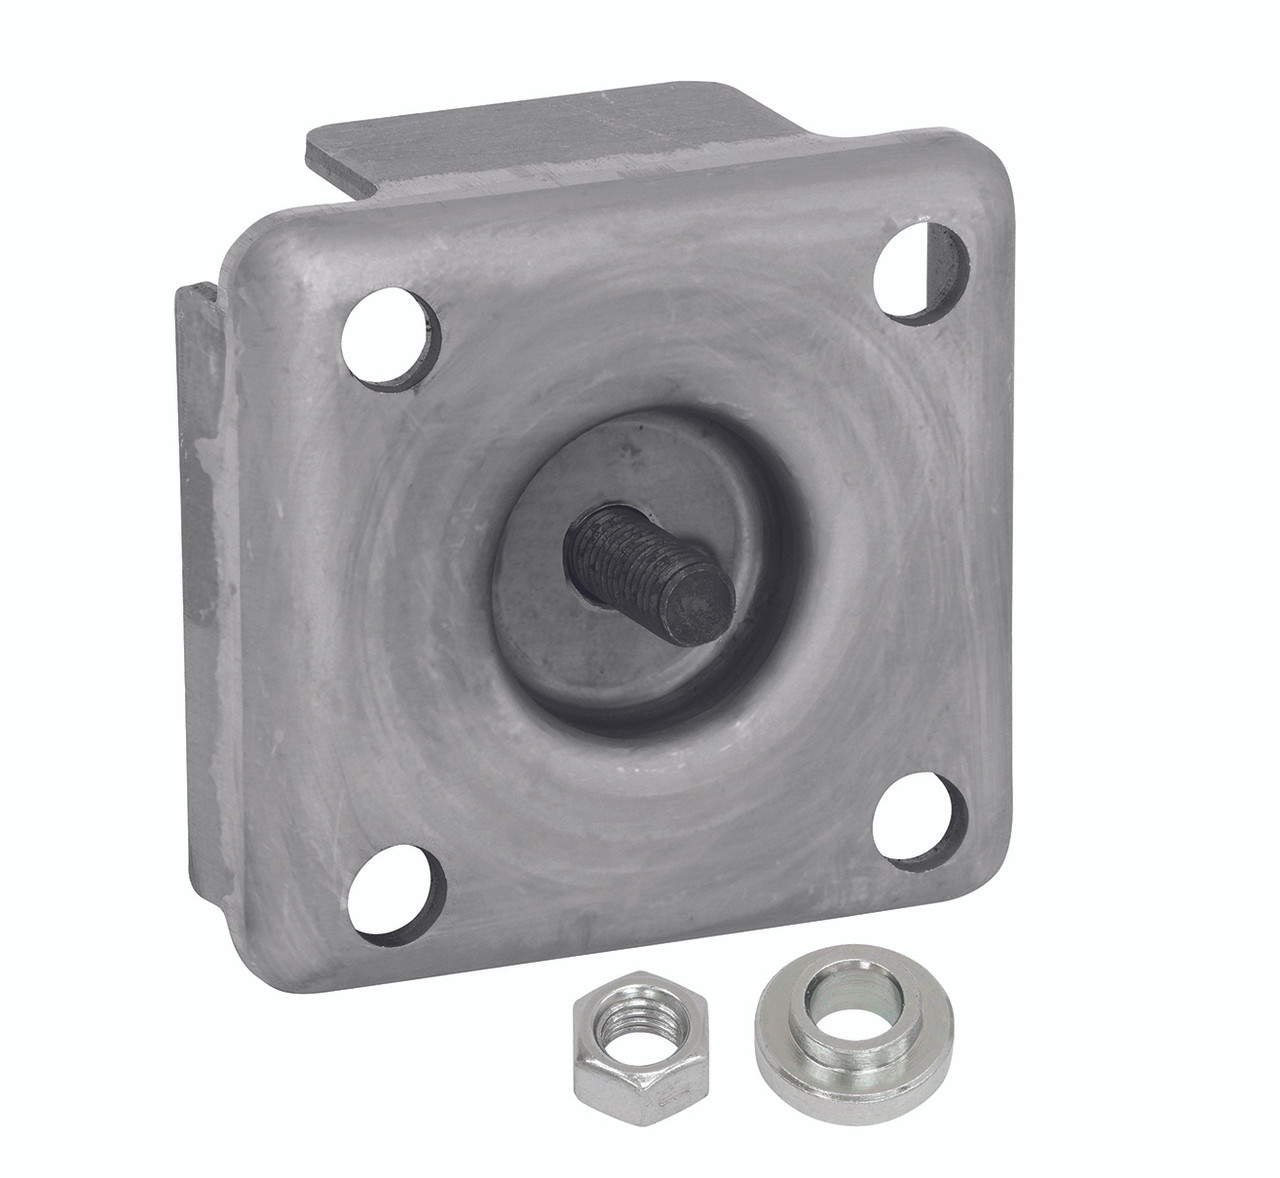 P9012-00 --- FULTON Weld-On Mounting Bracket